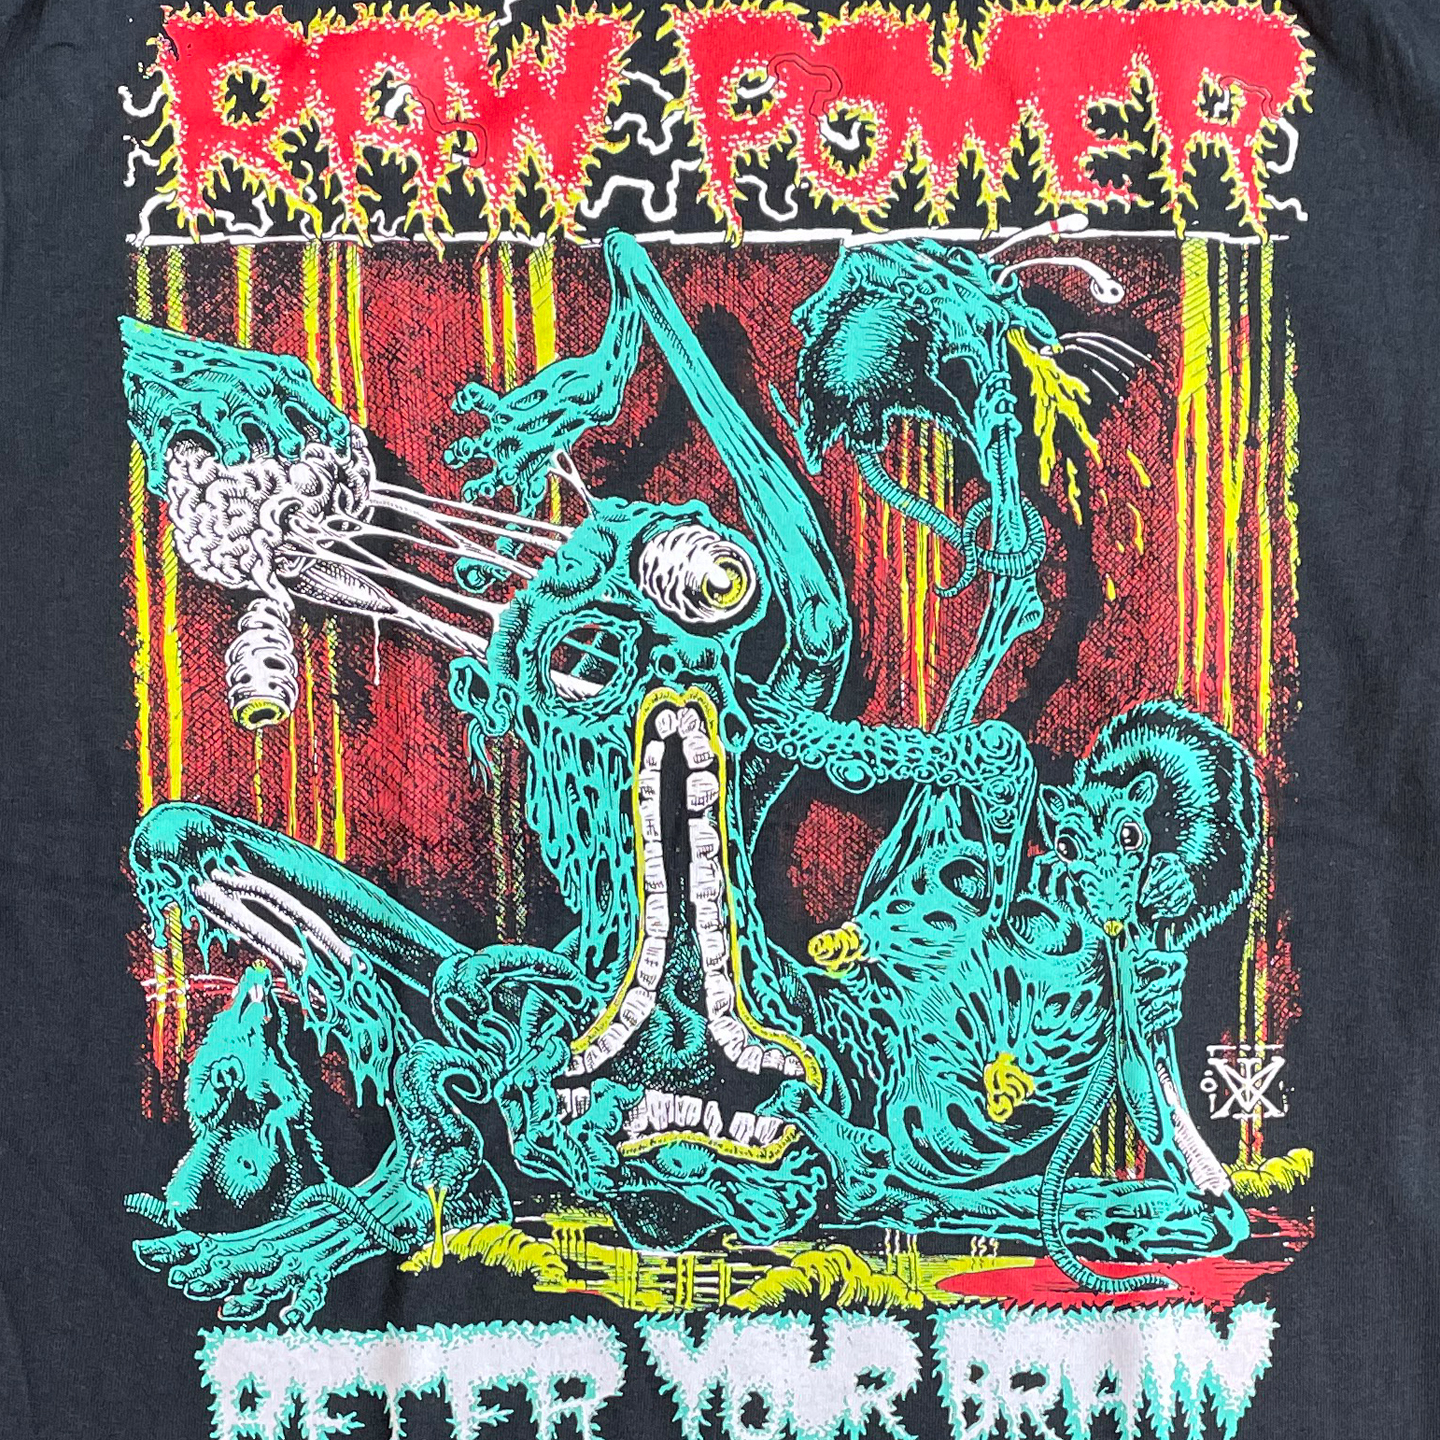 RAW POWER Tシャツ AFTER YOUR BRAIN オフィシャル!